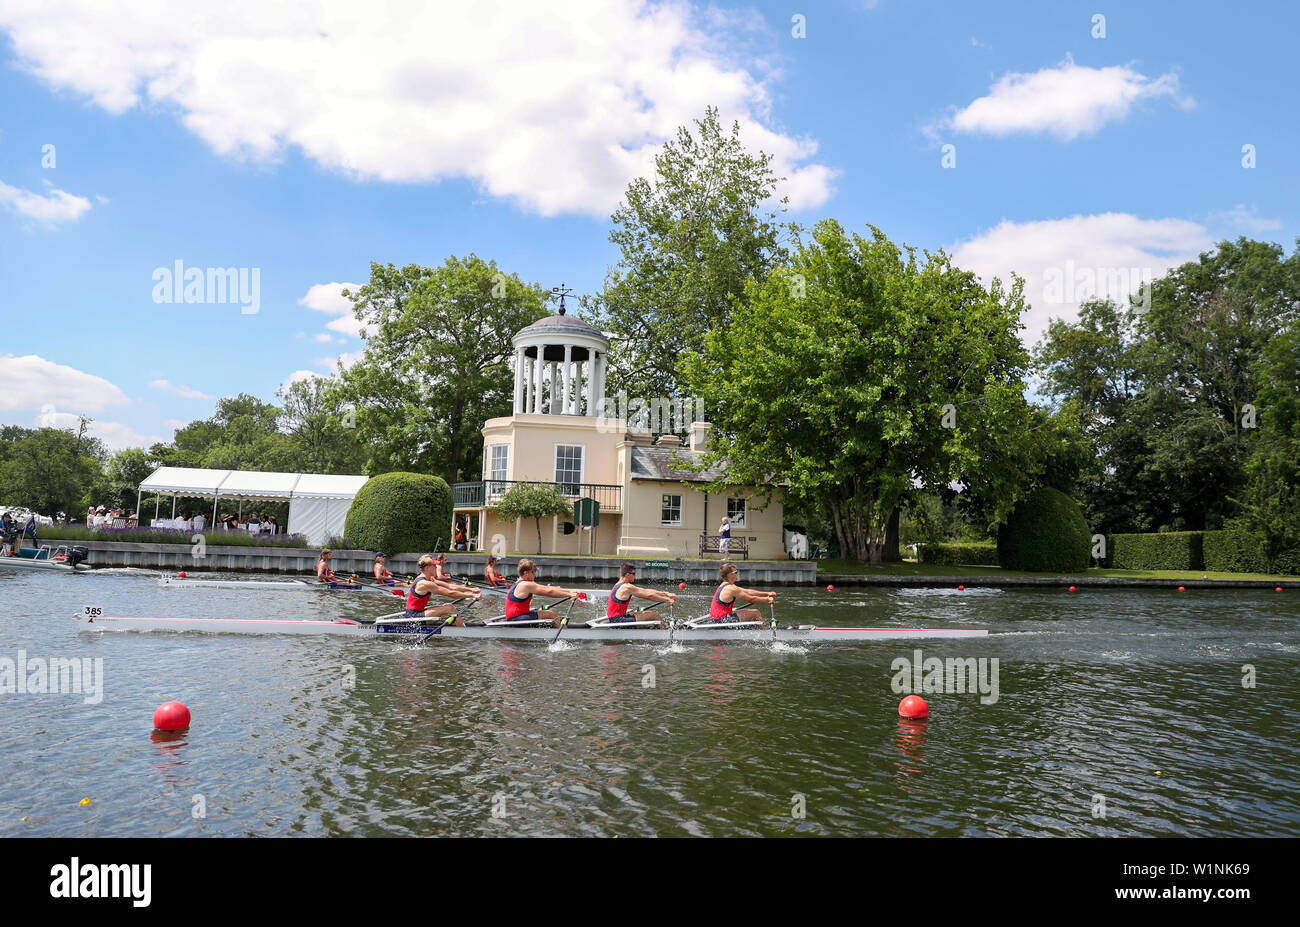 Rowers pass Temple Island on the opening day of the 2019 Henley Royal Regatta alongside the river Thames. - Stock Image